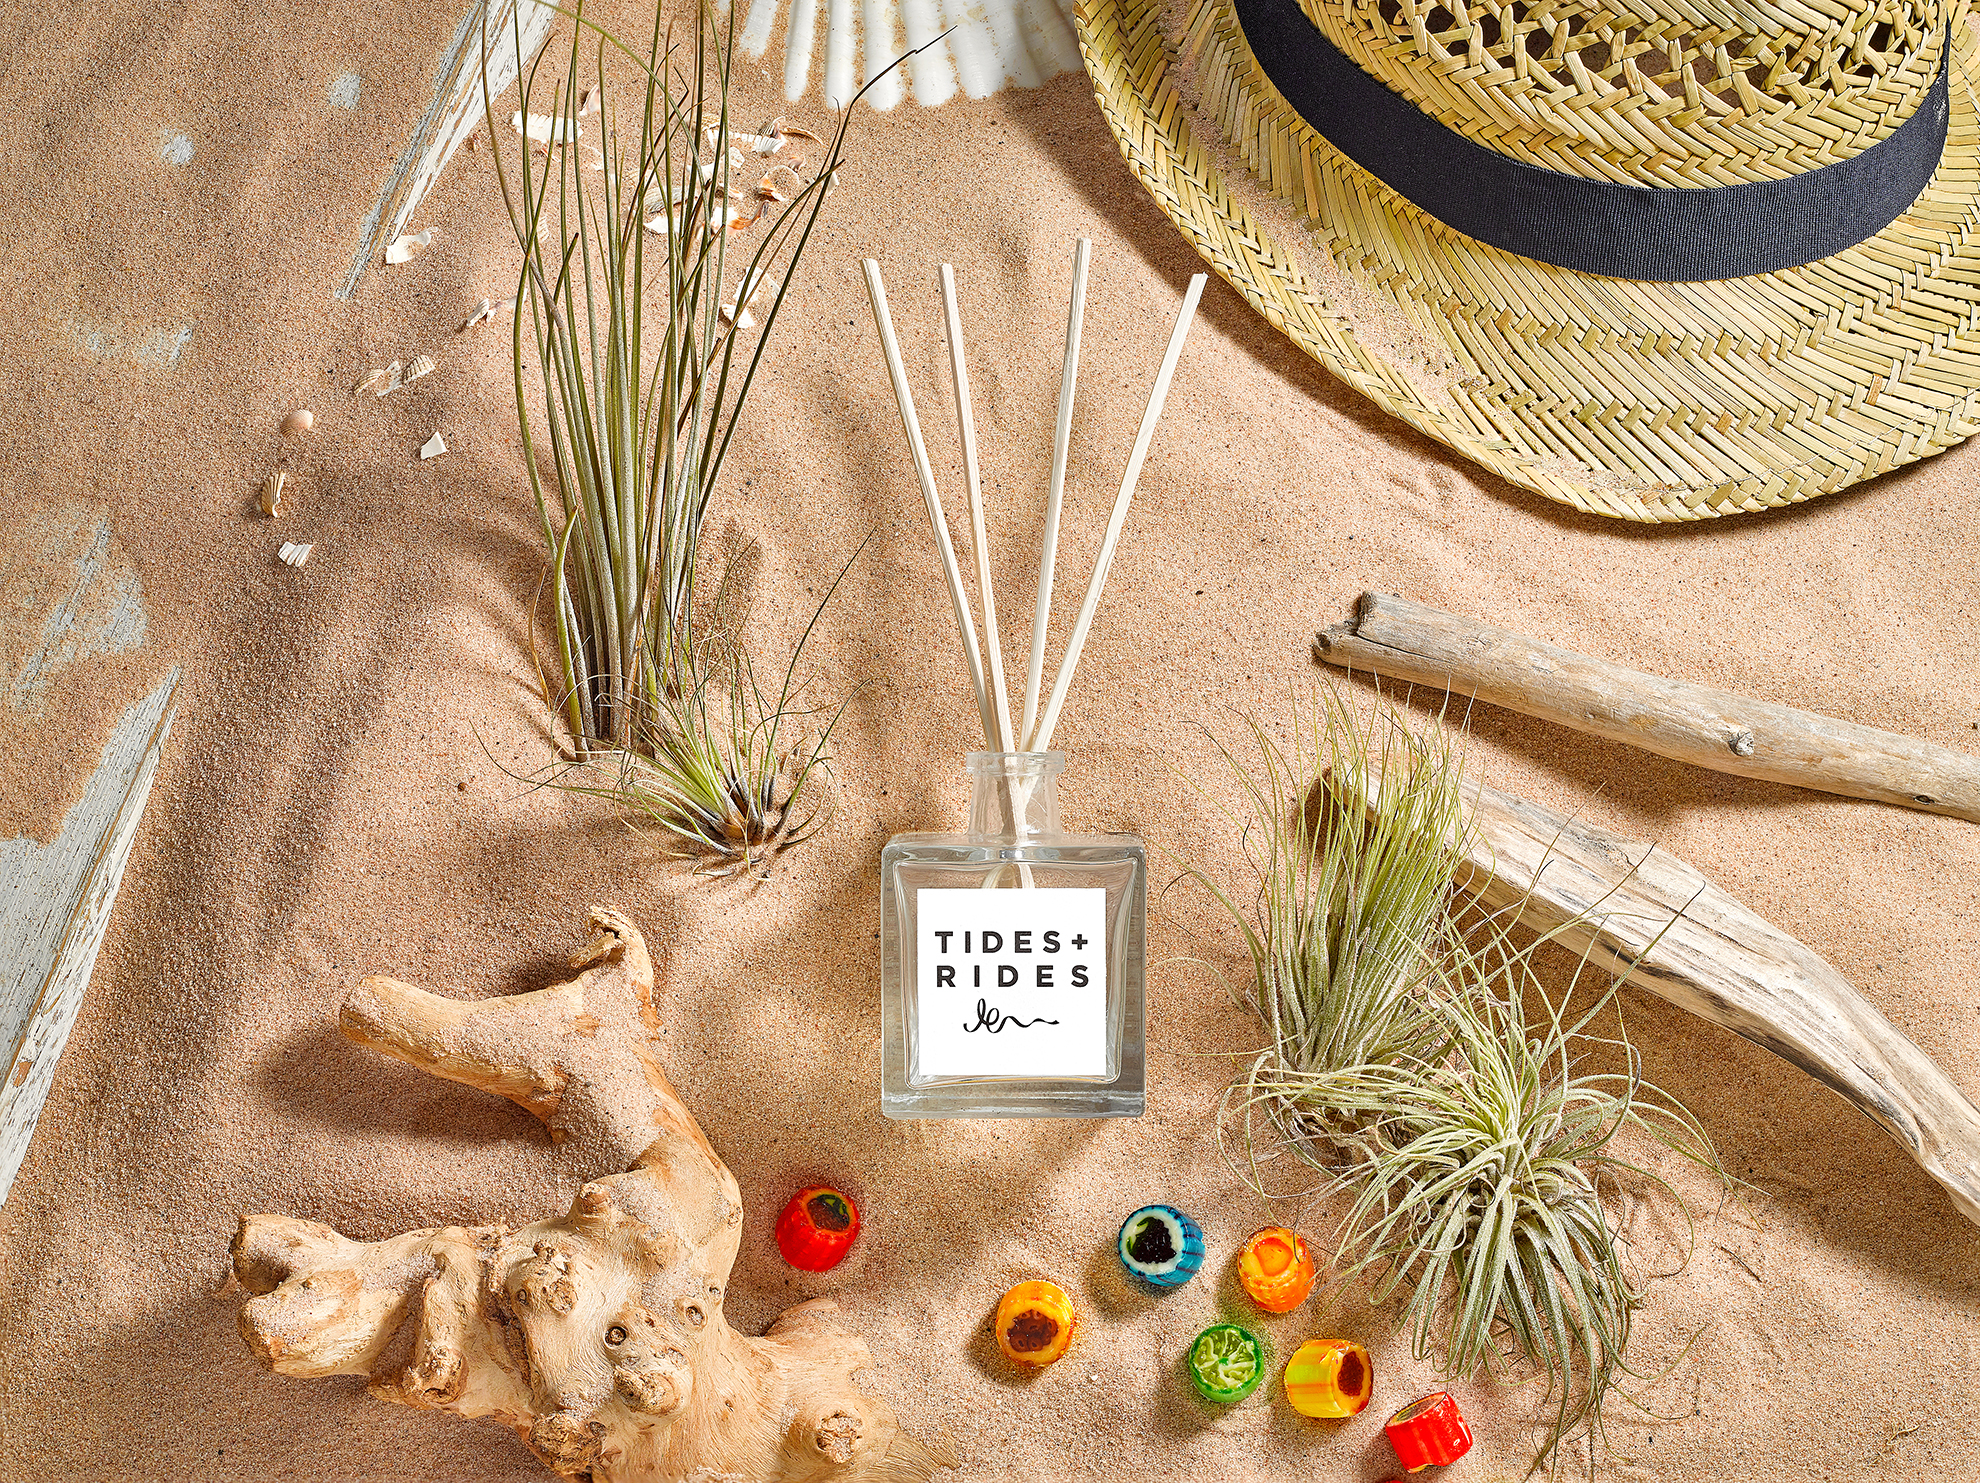 sand sea and grasses make up this lifestyle creative advertising product photo. Created in product packshot studio by Howlett photography